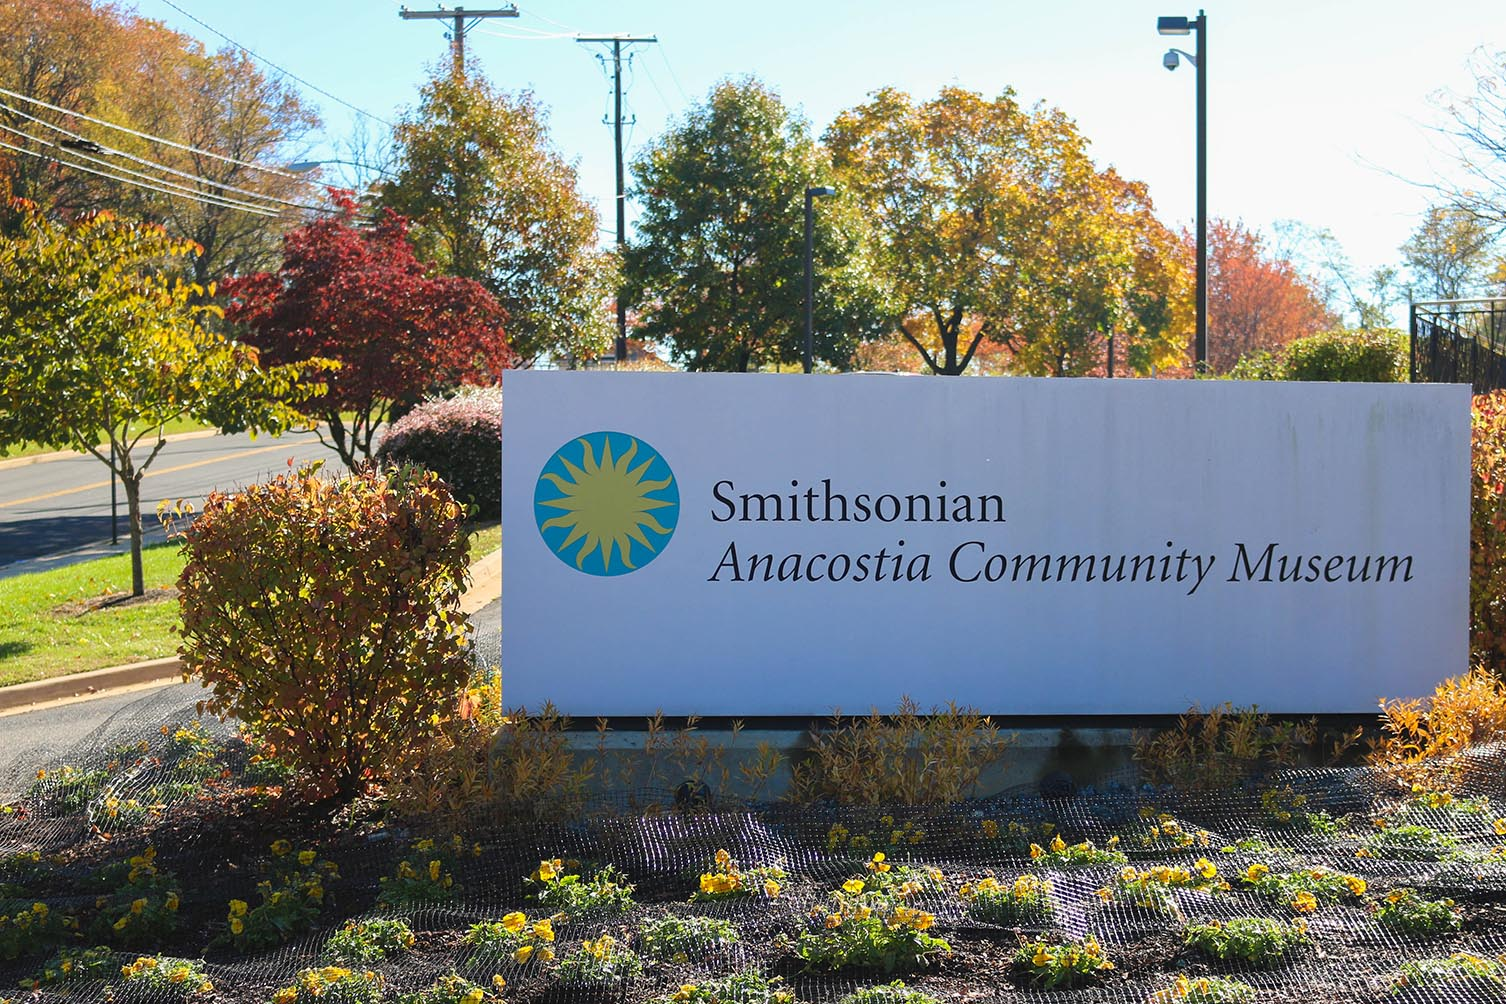 Smithsonian Anacostia Community Museum in Anacostia, Washington, DC